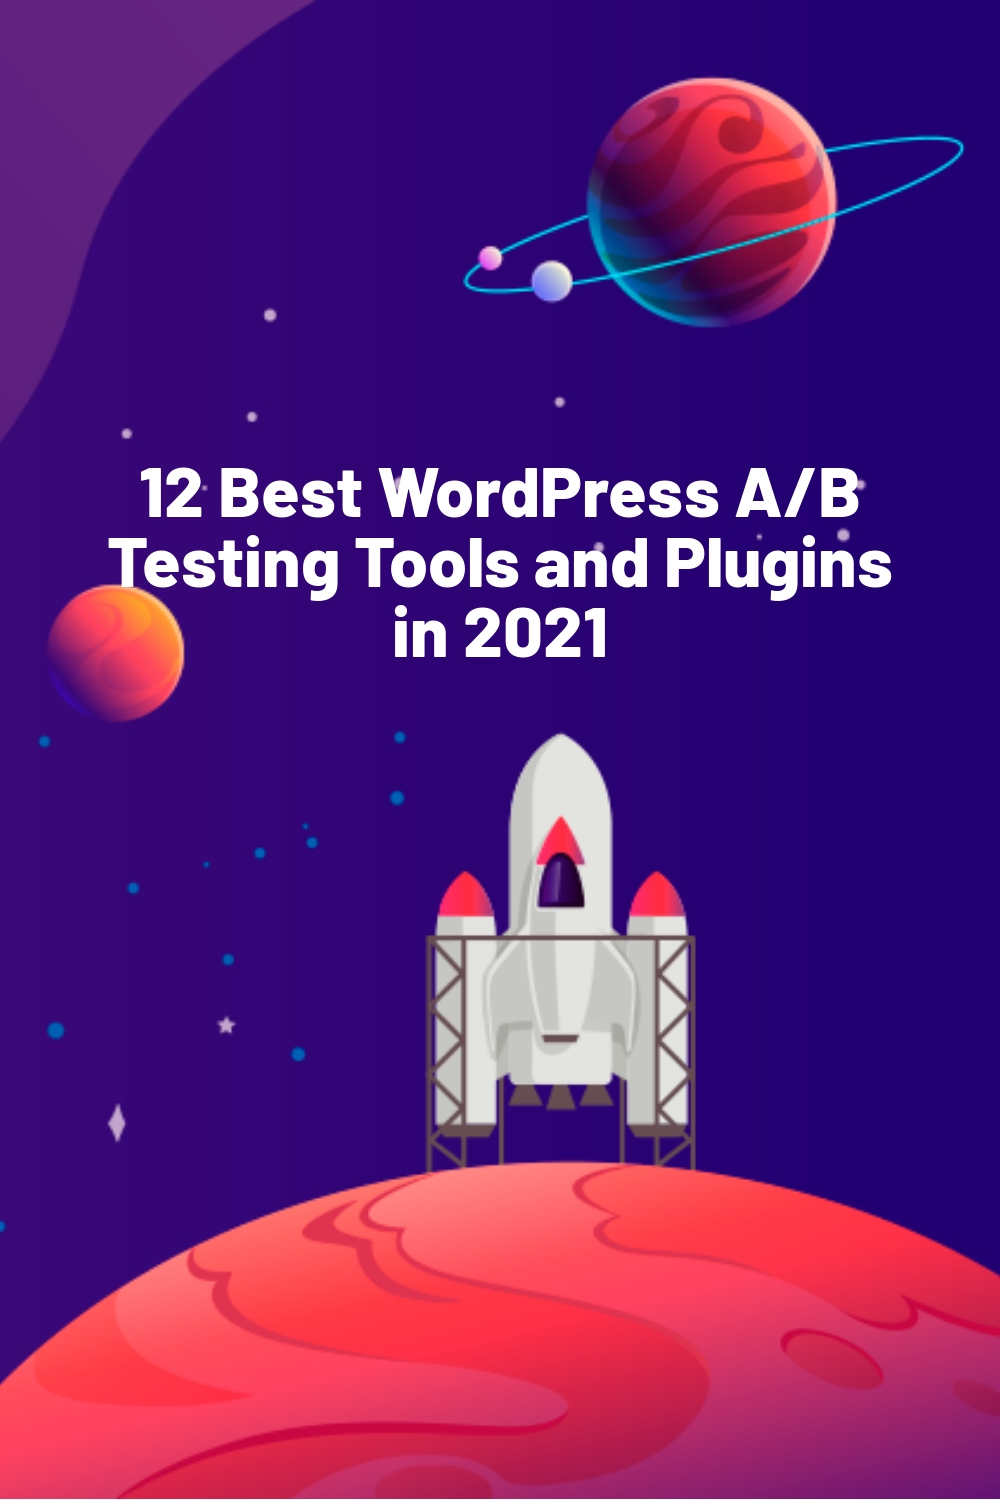 12 Best WordPress A/B Testing Tools and Plugins in 2021